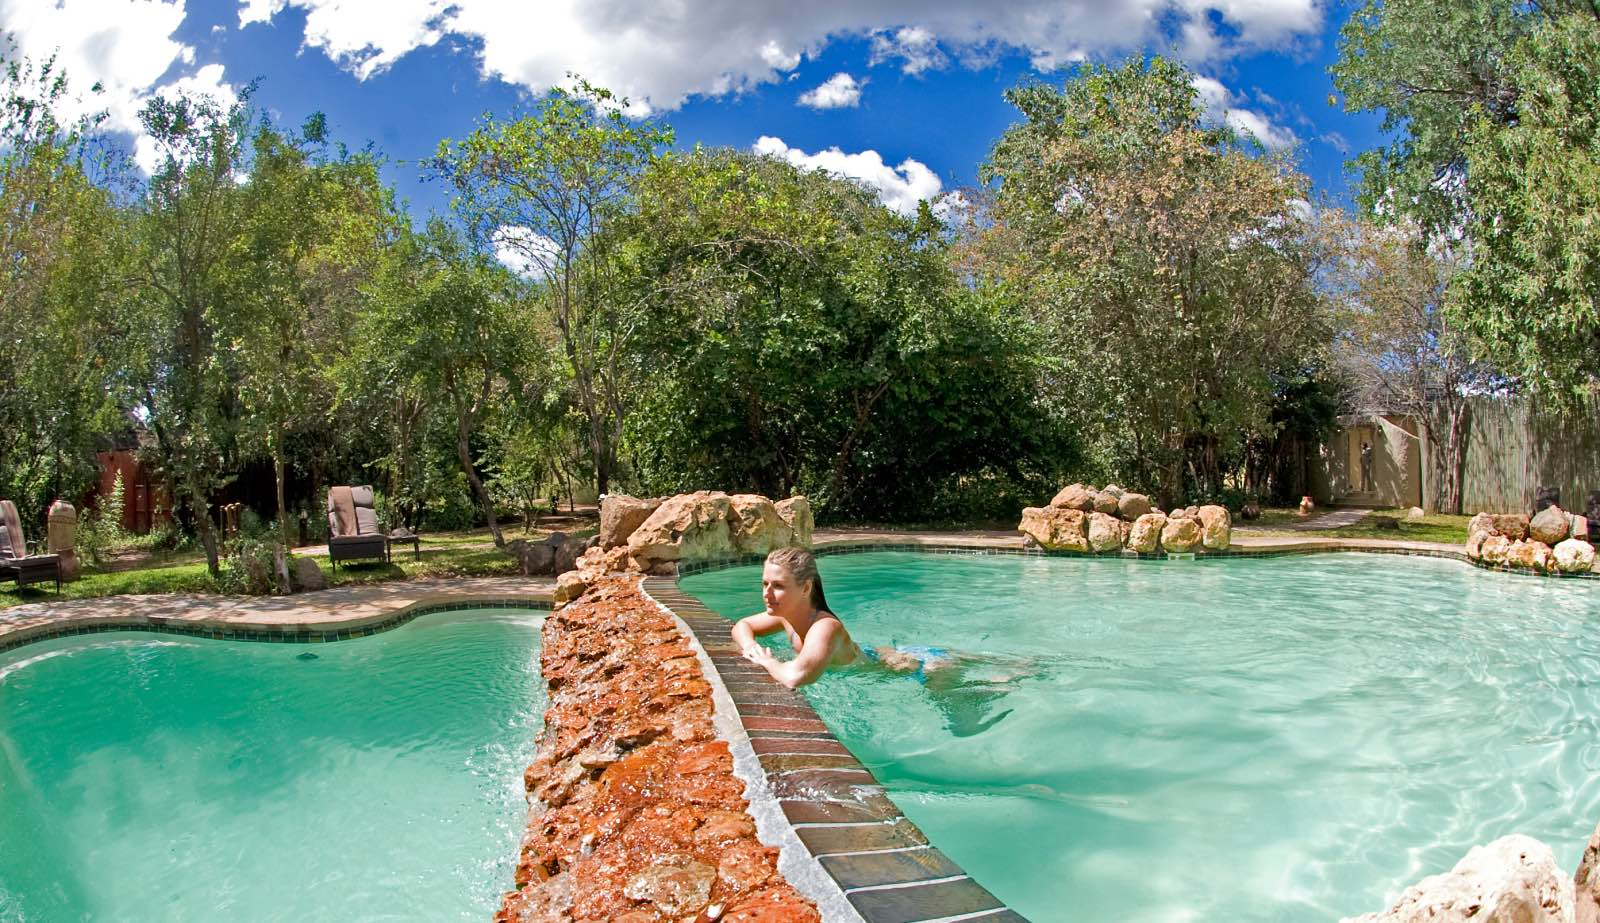 A refreshing swimming pool with a view of the Chobe River below at Chobe Chilwero